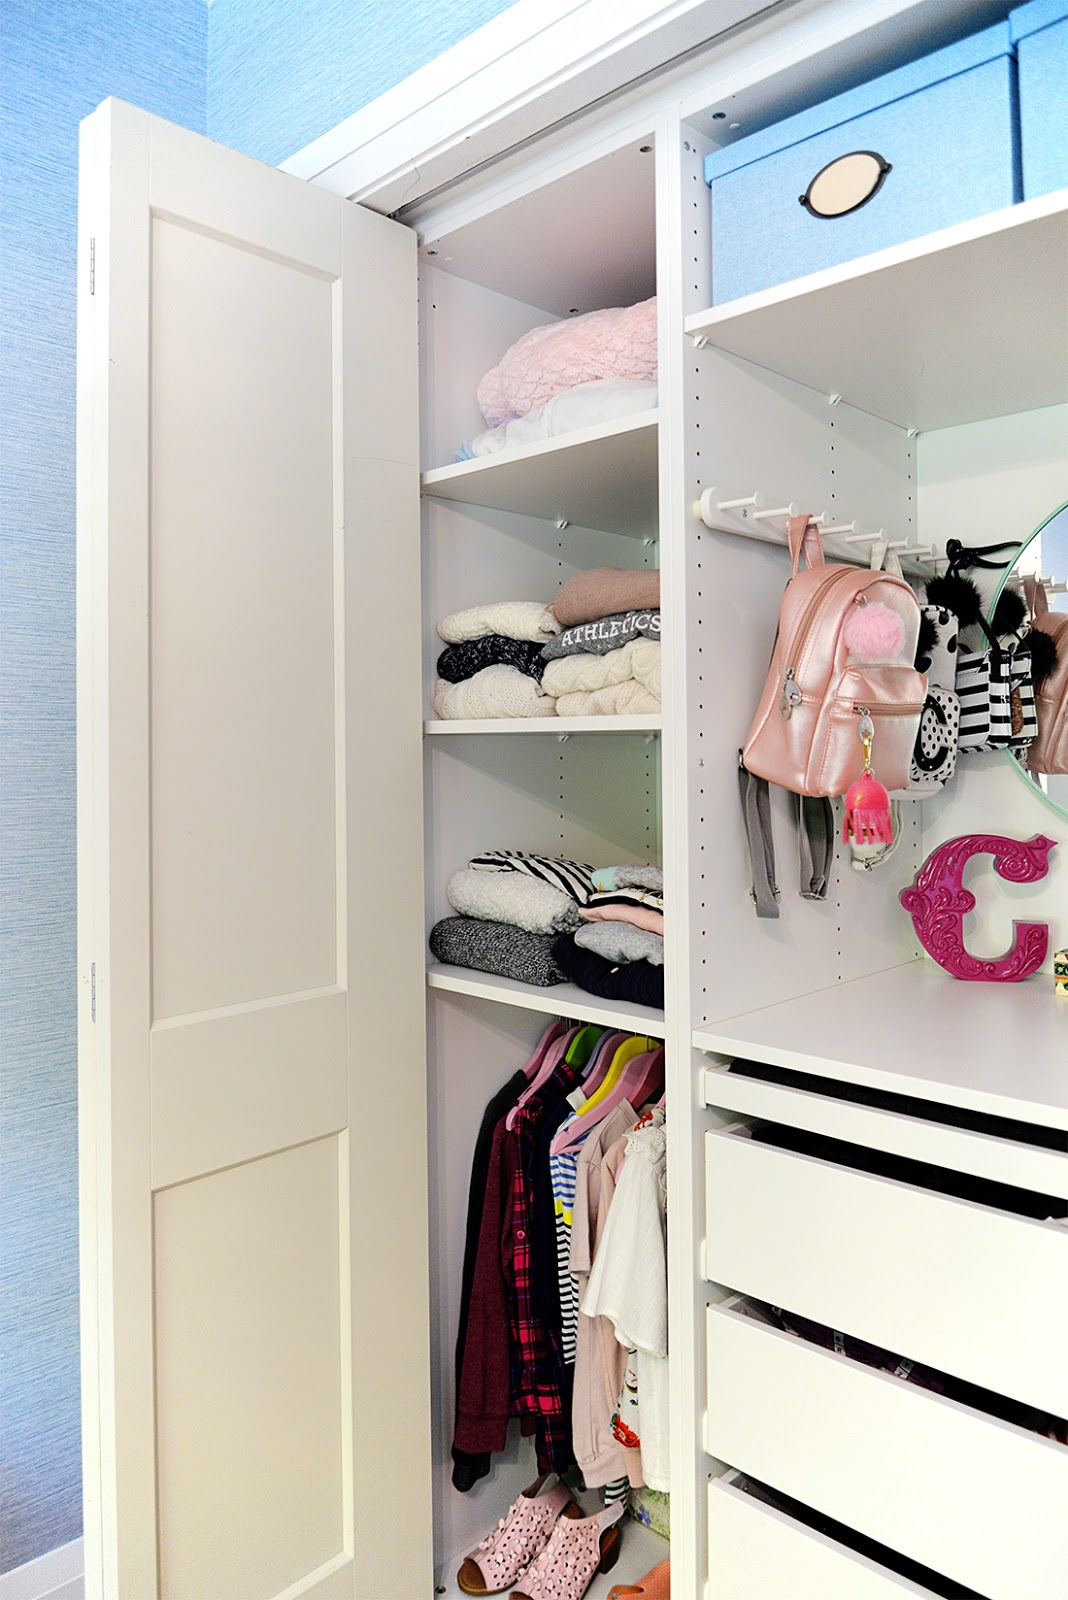 Ikea Wardrobe For Kids Cheaper Than Retail Price Buy Clothing Accessories And Lifestyle Products For Women Men